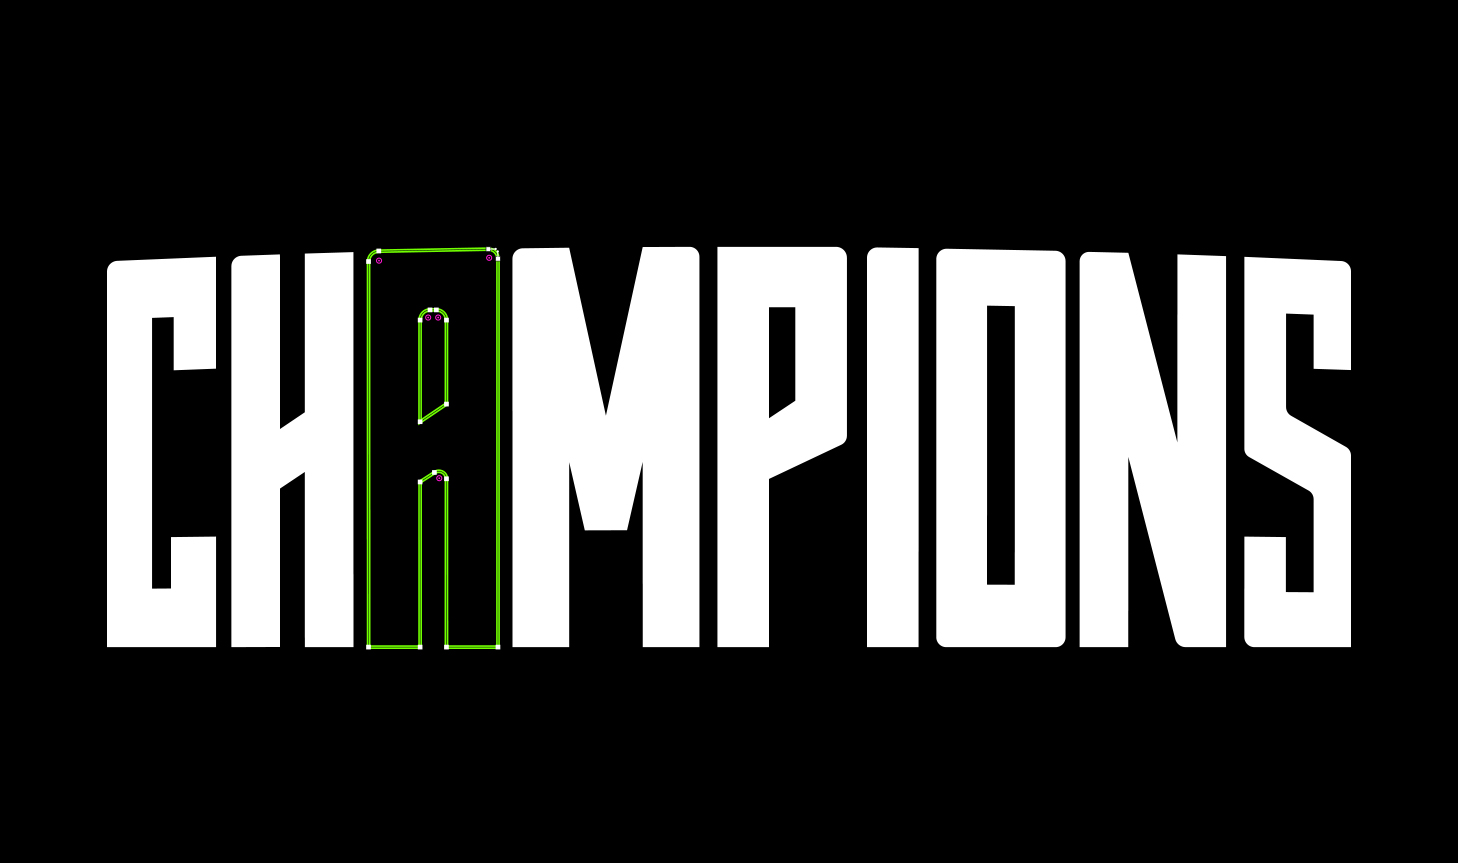 Champions Custom Typography Adobe Illustrator Anchor Points